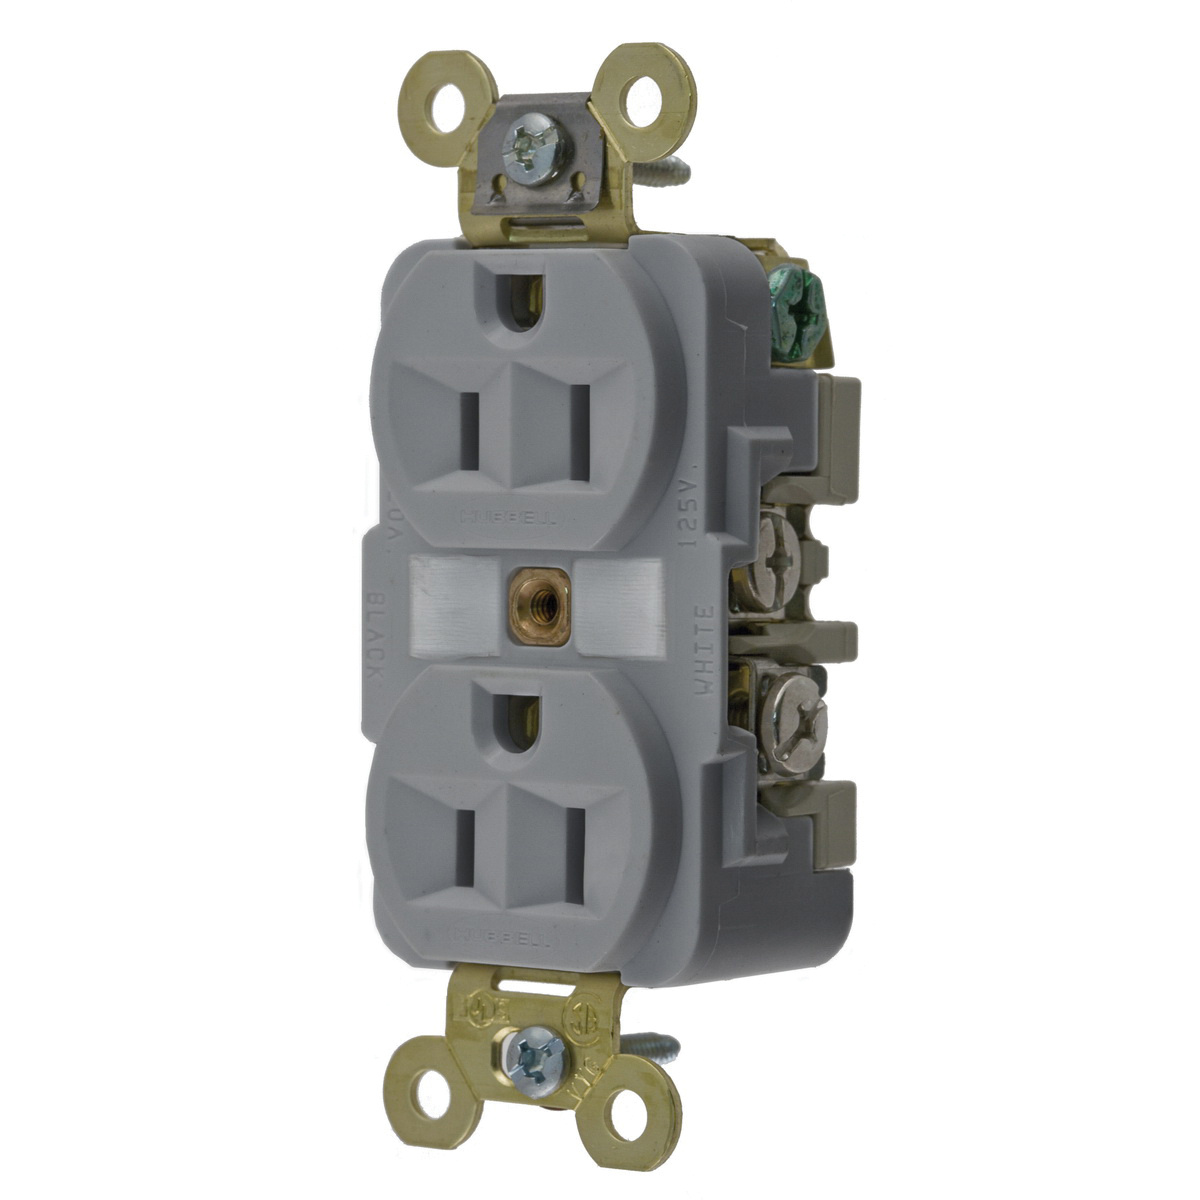 Hubbell-Wiring HBL5262GY Industrial/Specification Grade Extra Heavy-Duty on